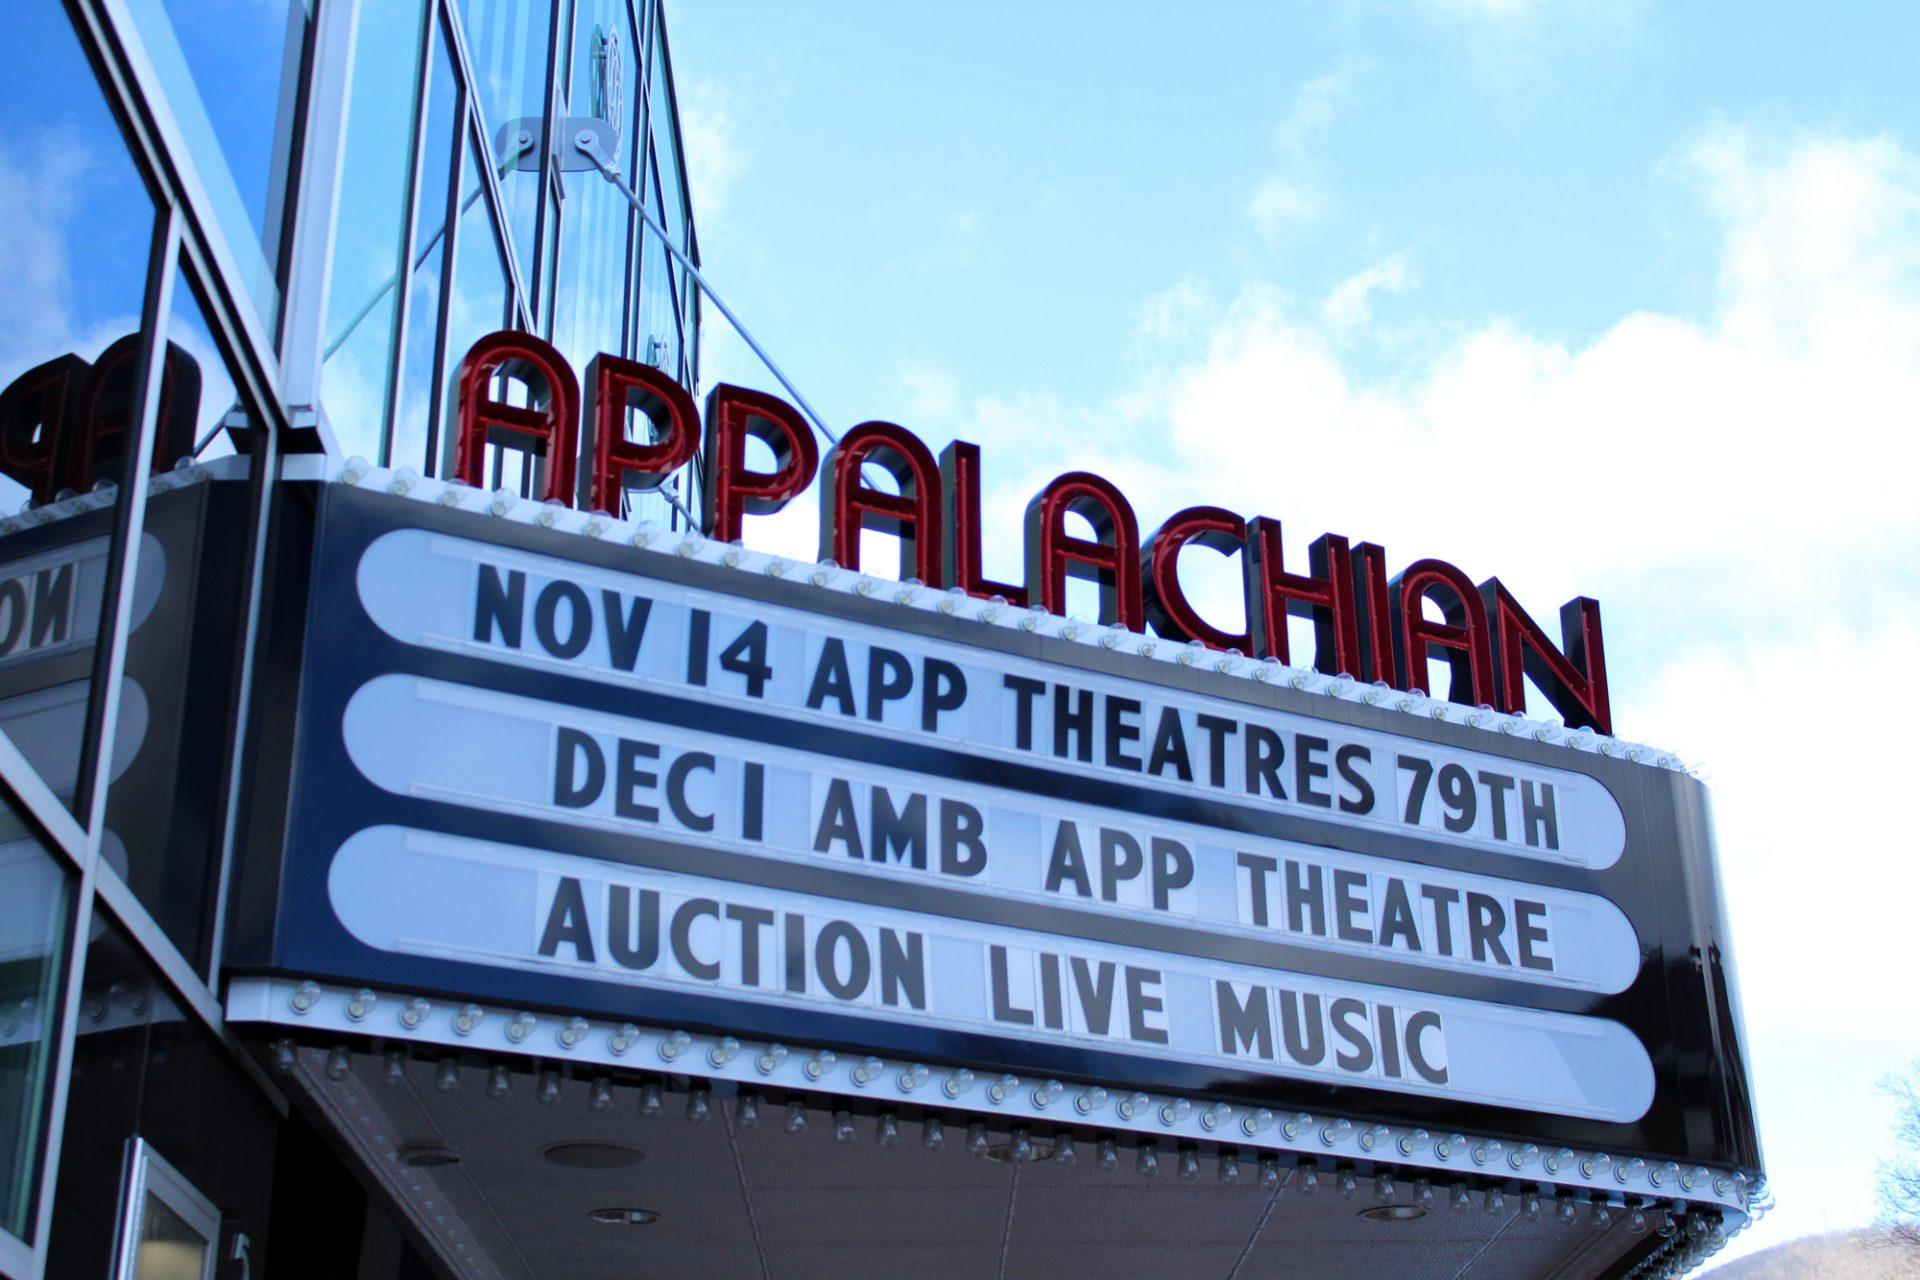 The+Appalachian+Theatre%27s+marque.+The+Theatre+has+been+a+historic+symbol+of+Boone+for+years.+